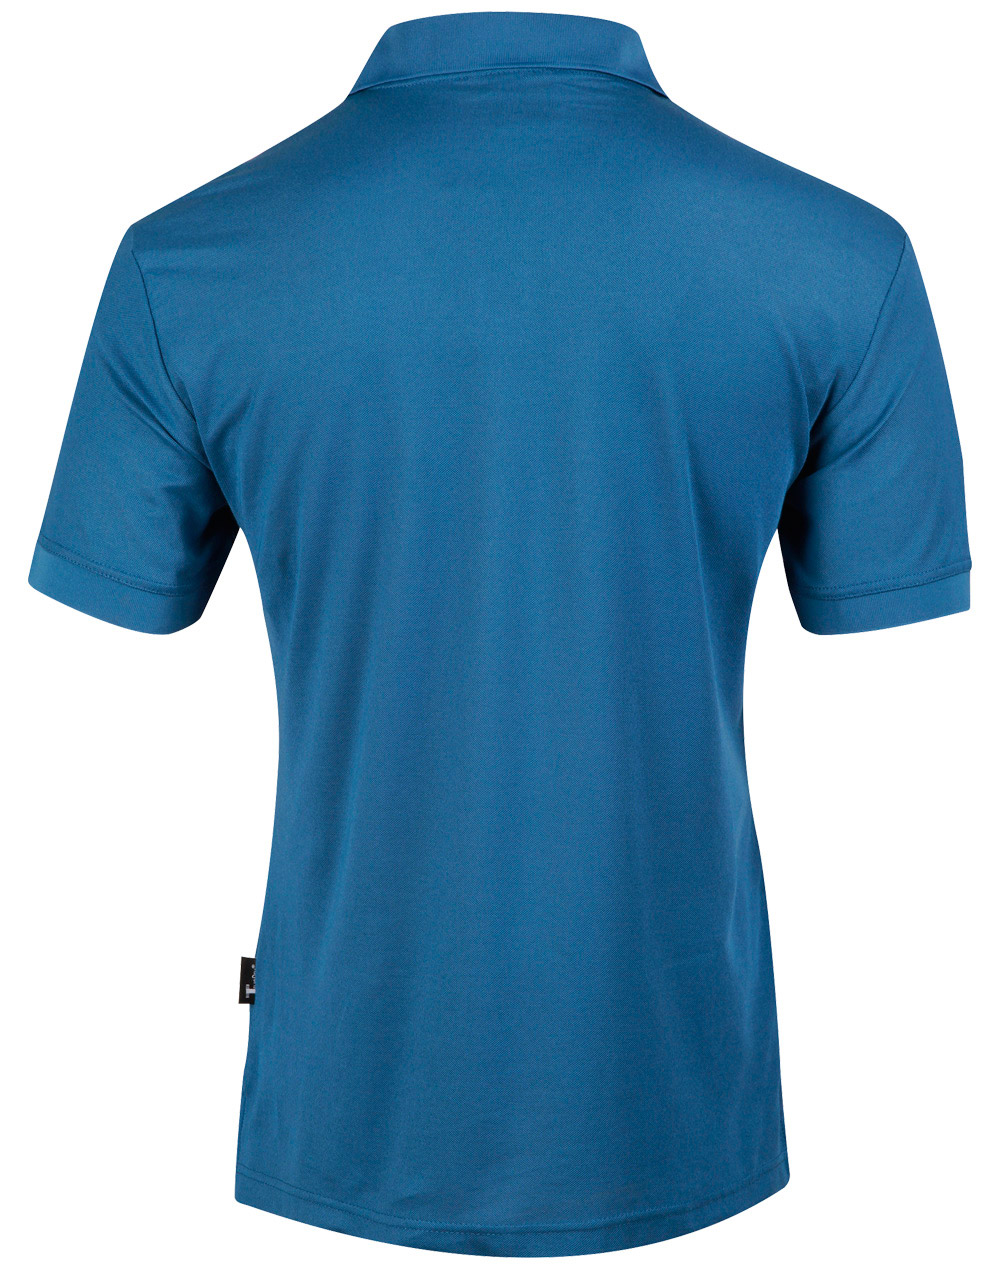 https://s3-ap-southeast-1.amazonaws.com/ws-imgs/POLOSHIRTS/PS63_CobaltBlue_Back.jpg